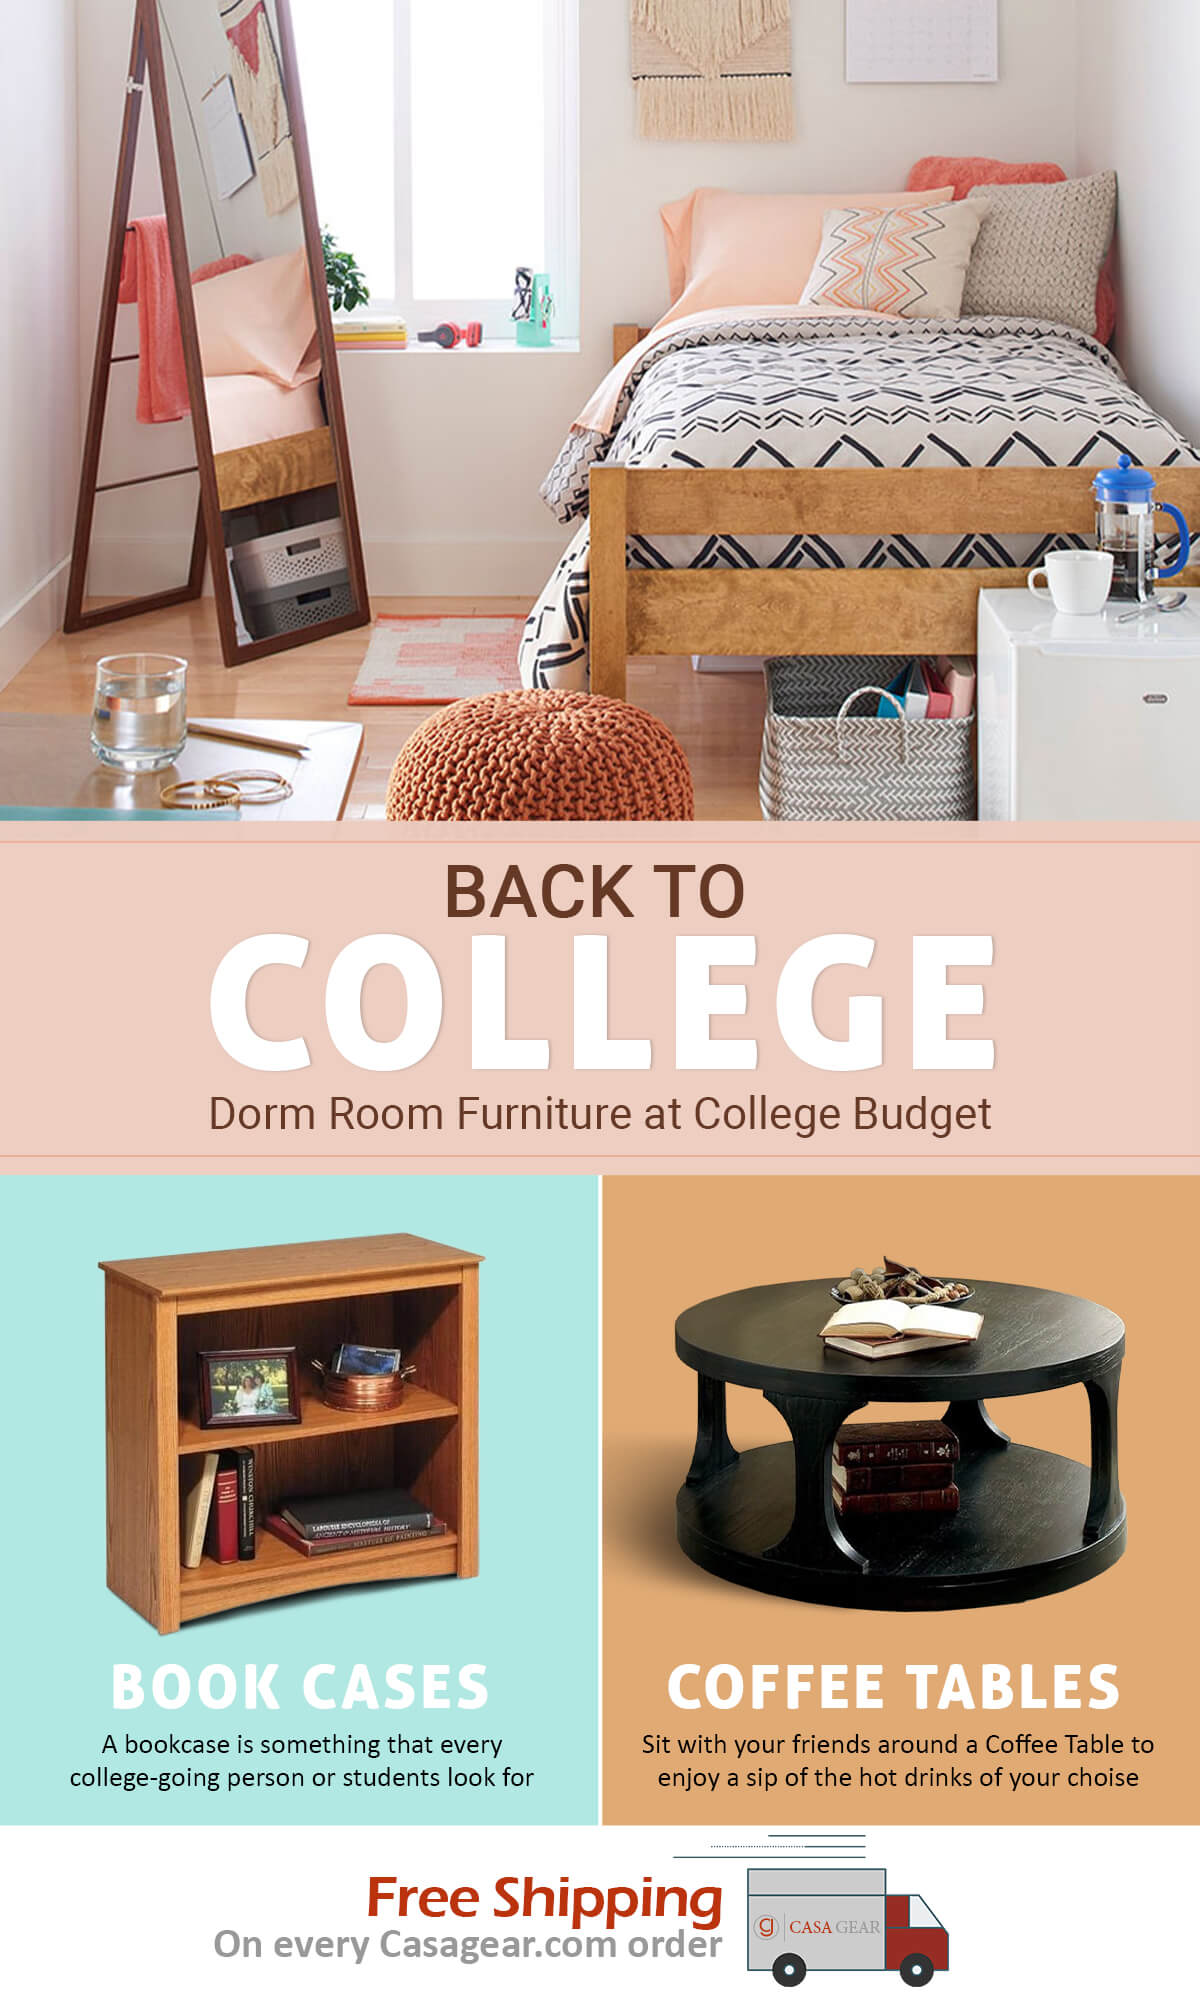 Back to College Furniture Deal